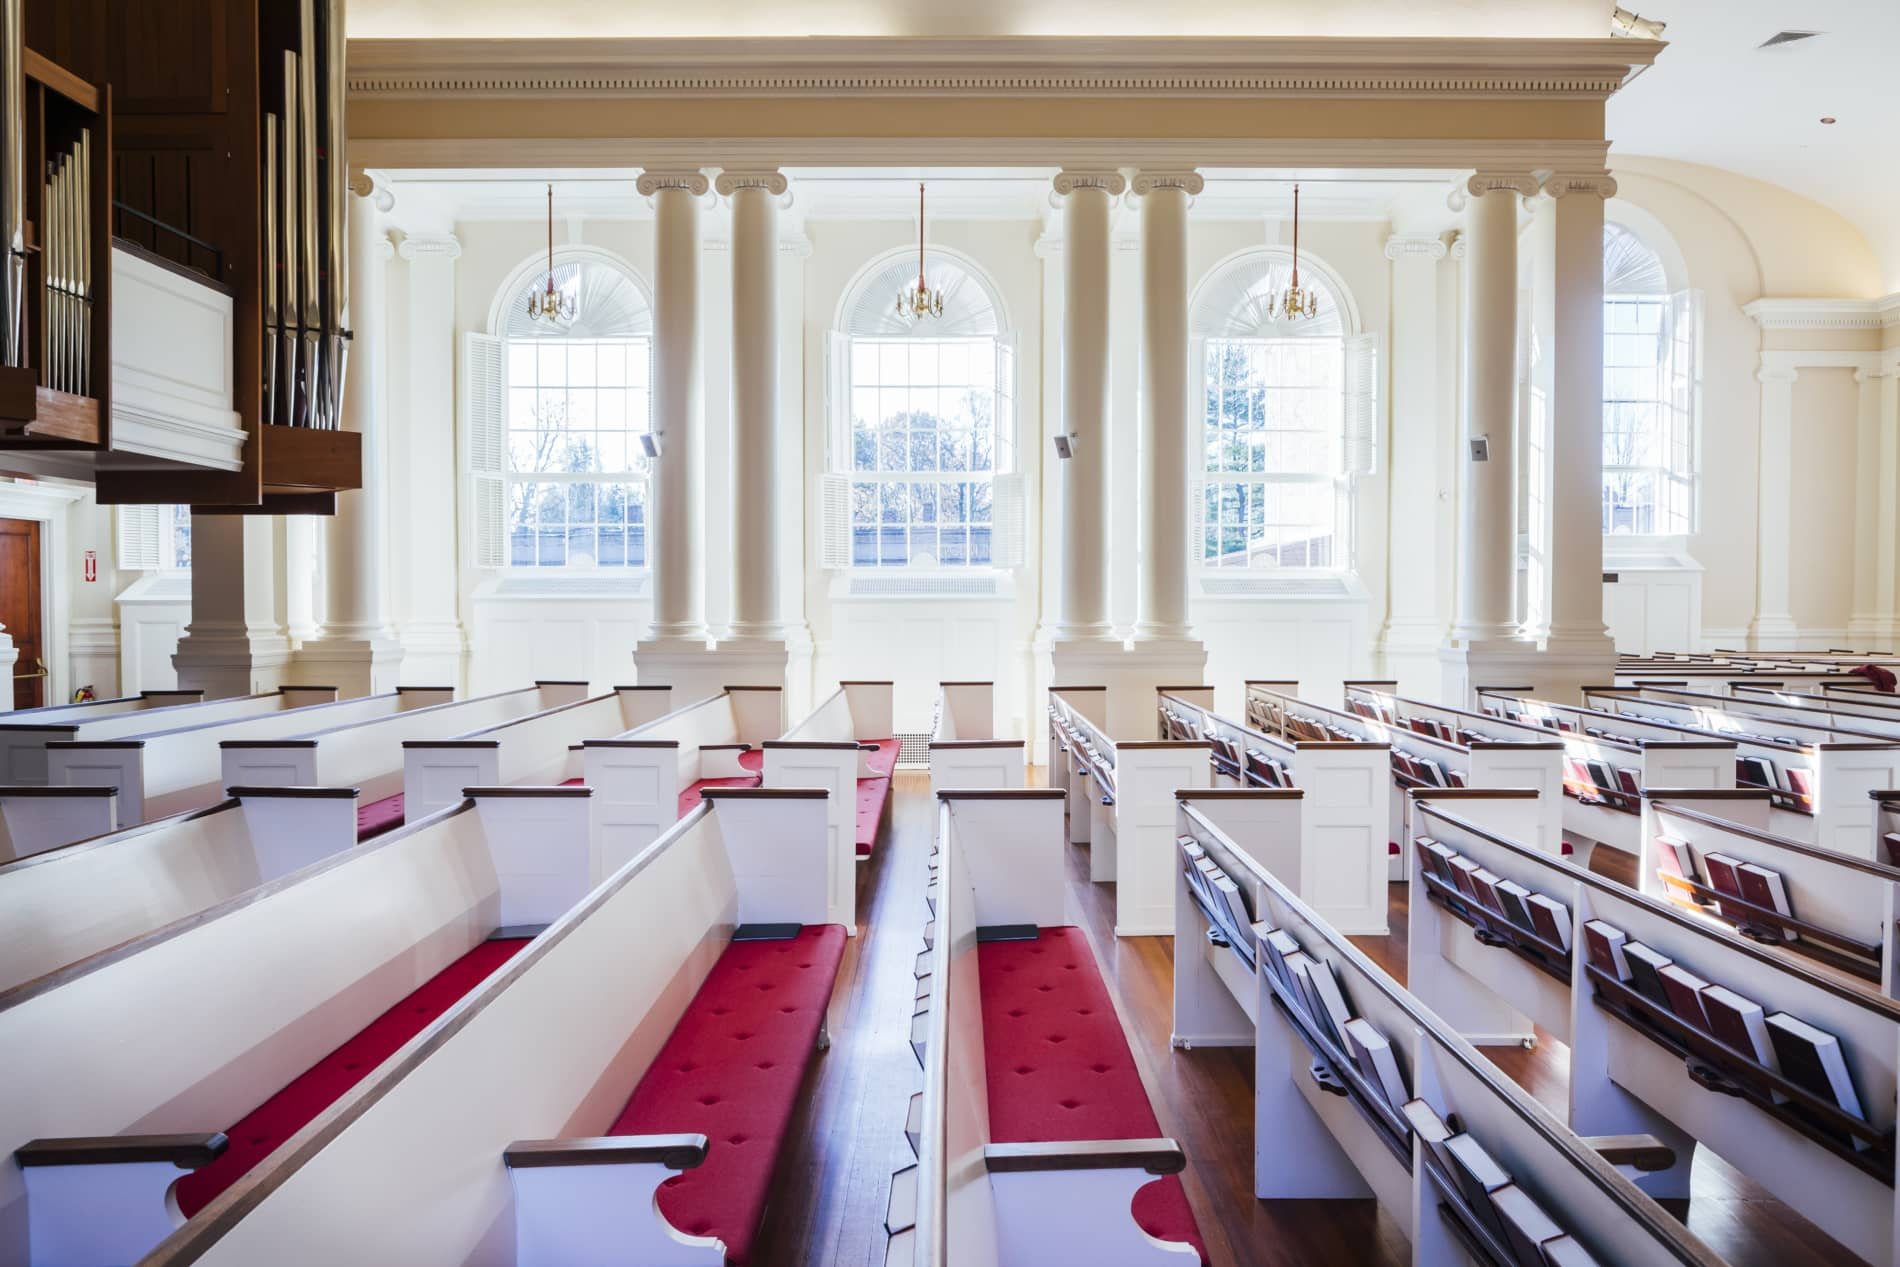 Interior of the sanctuary of Wellesley Village church showing pews, organ pipes, and clear glass windows.